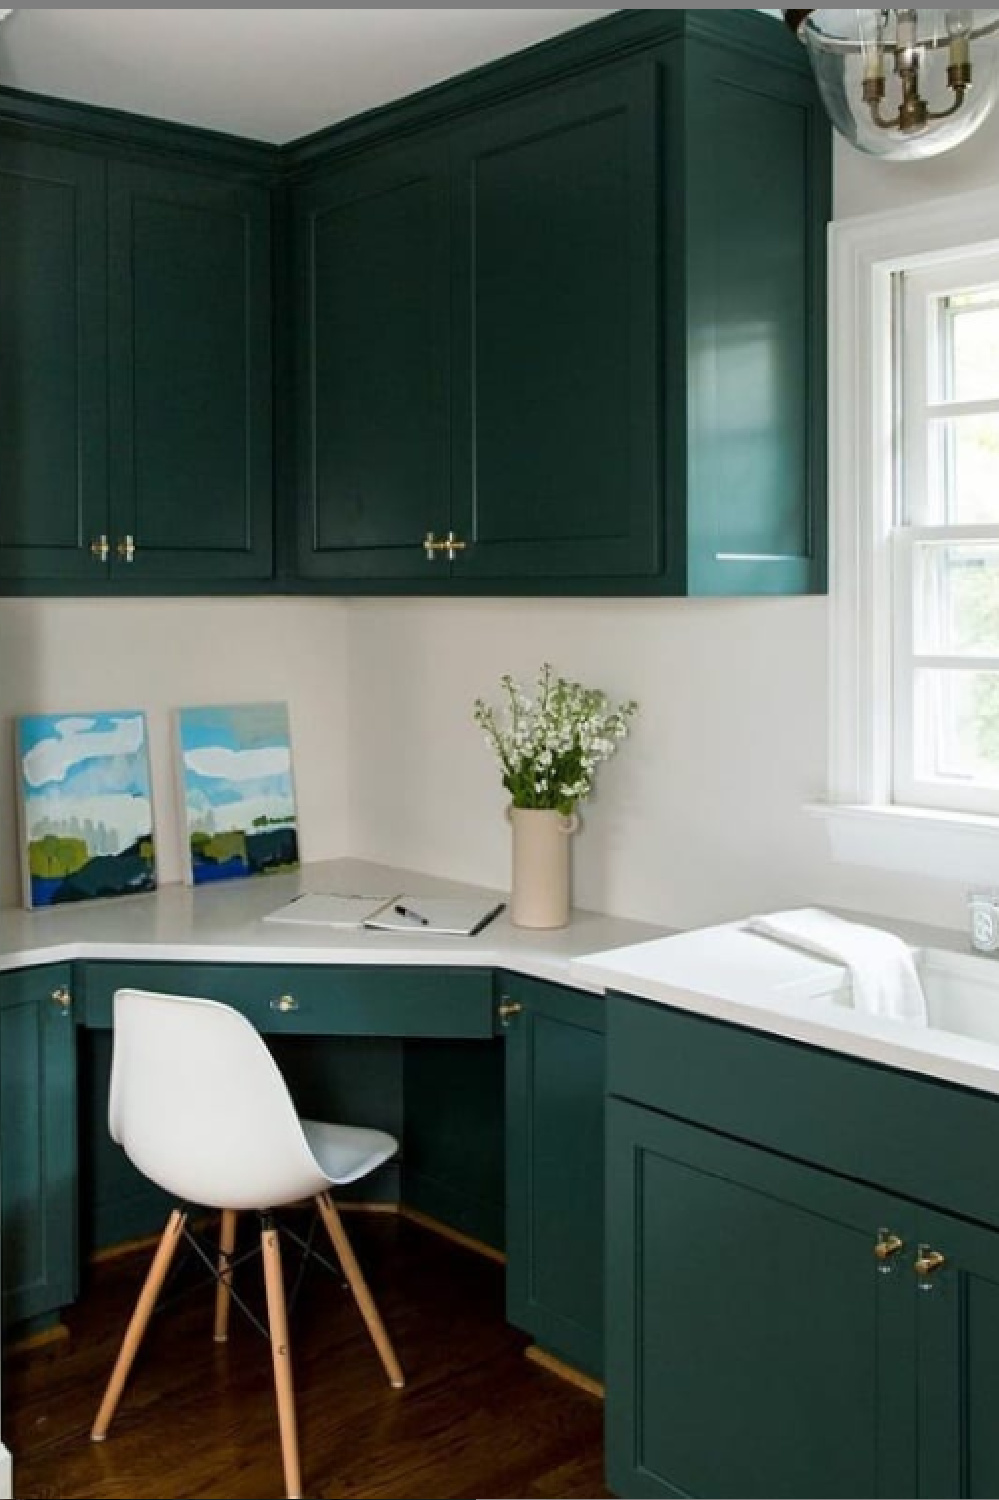 Green kitchen cabinets painted BM Tarrytown Green with white walls and MCM desk chair. #tarrytowngreen #paintcolors #greenkitchen